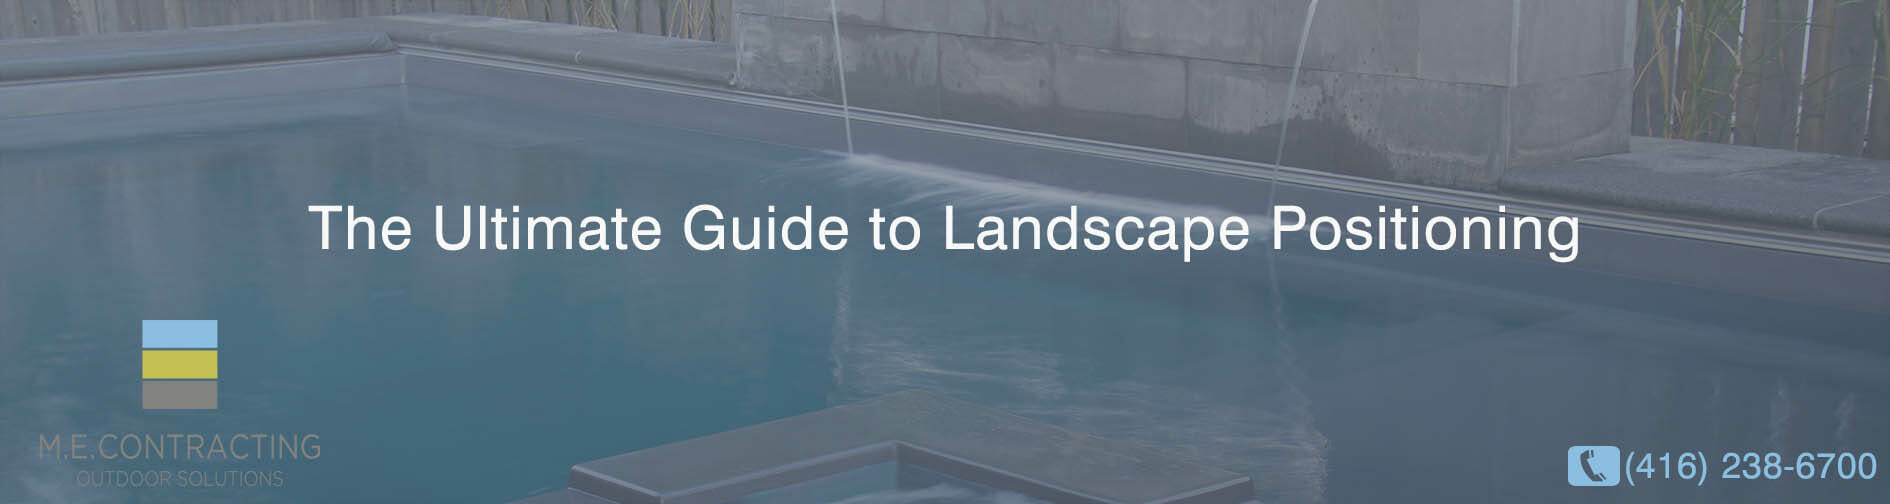 The Ultimate Guide to Landscape Positioning